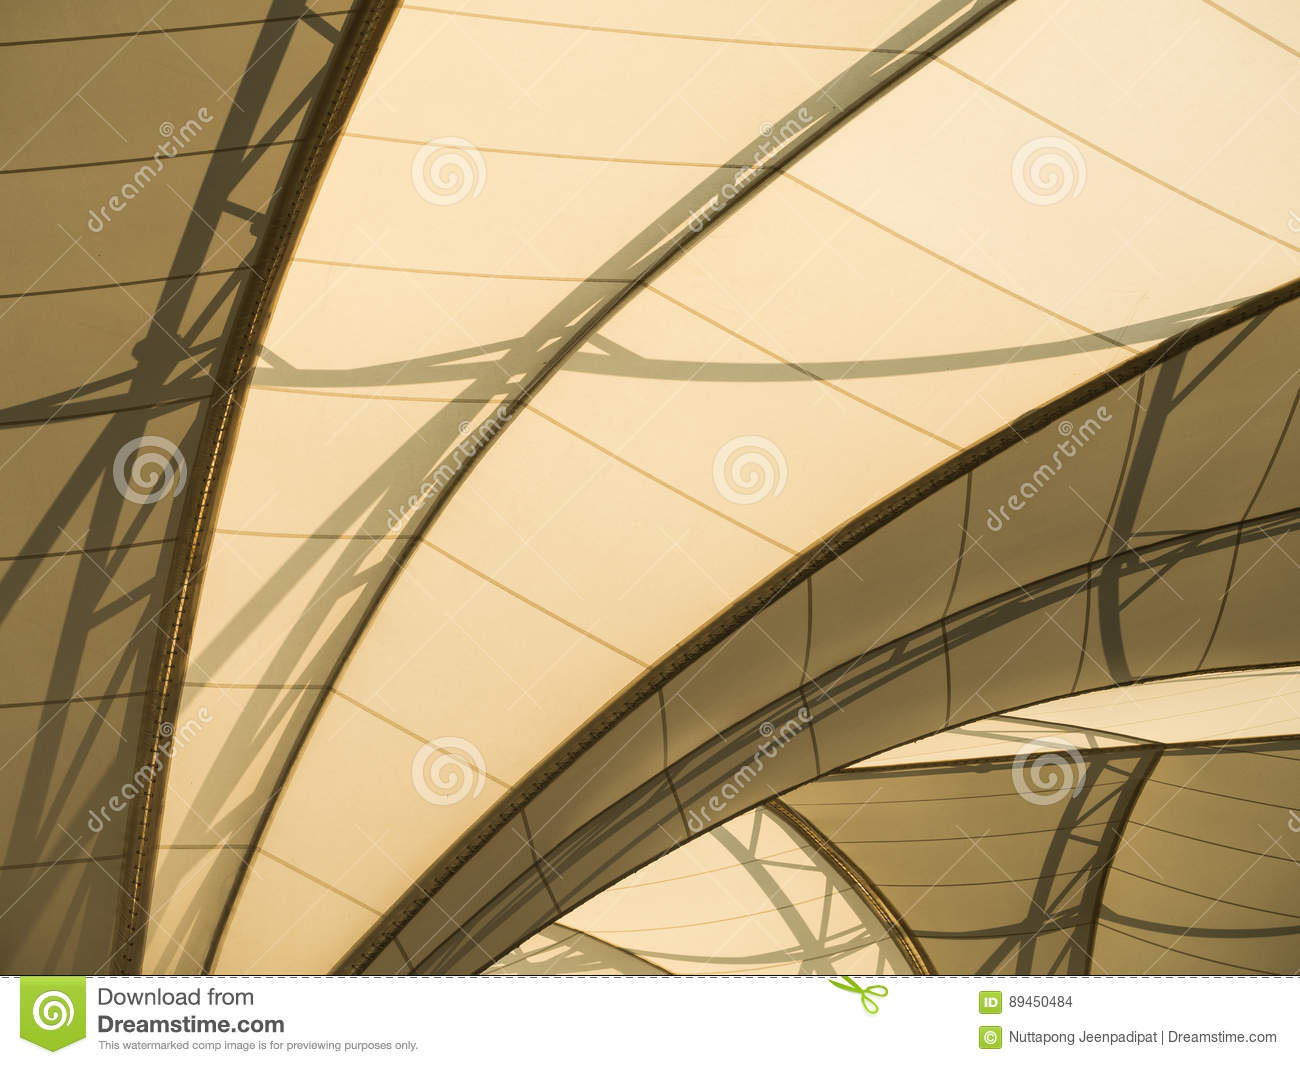 Fabric tensile roof structure